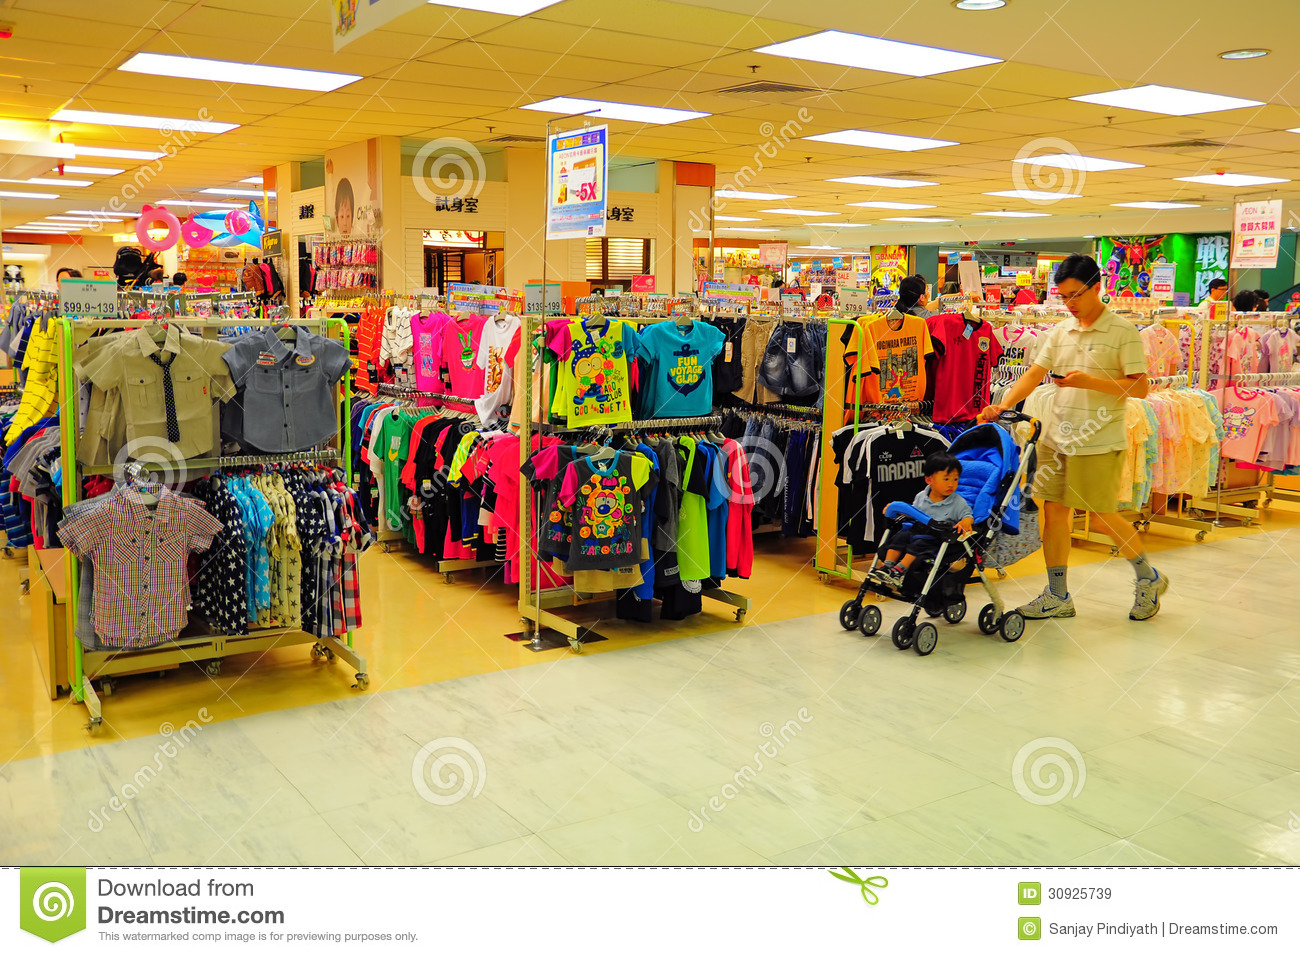 Store for kids clothes. Clothing stores